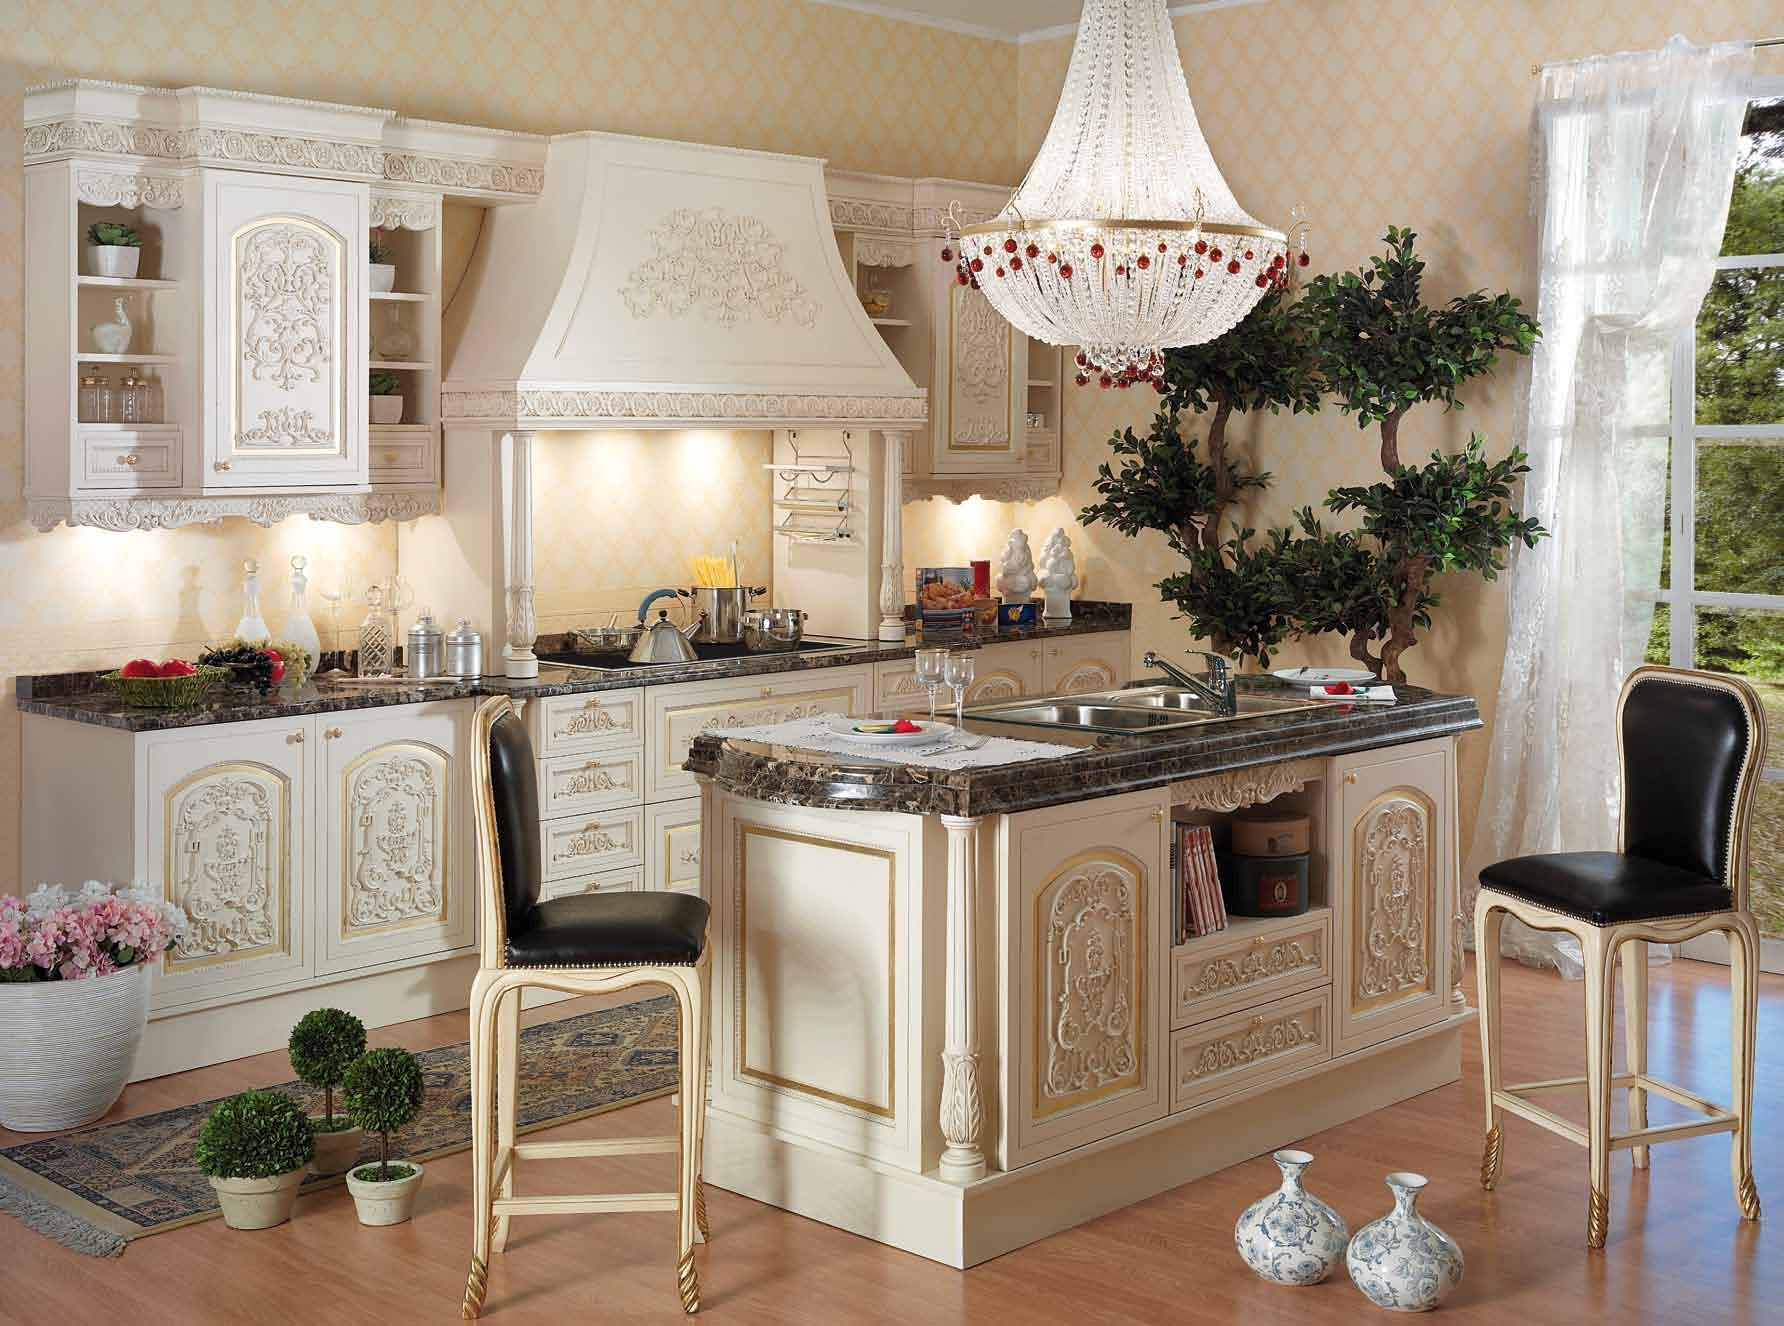 Image of: Italian Kitchen Interior Design